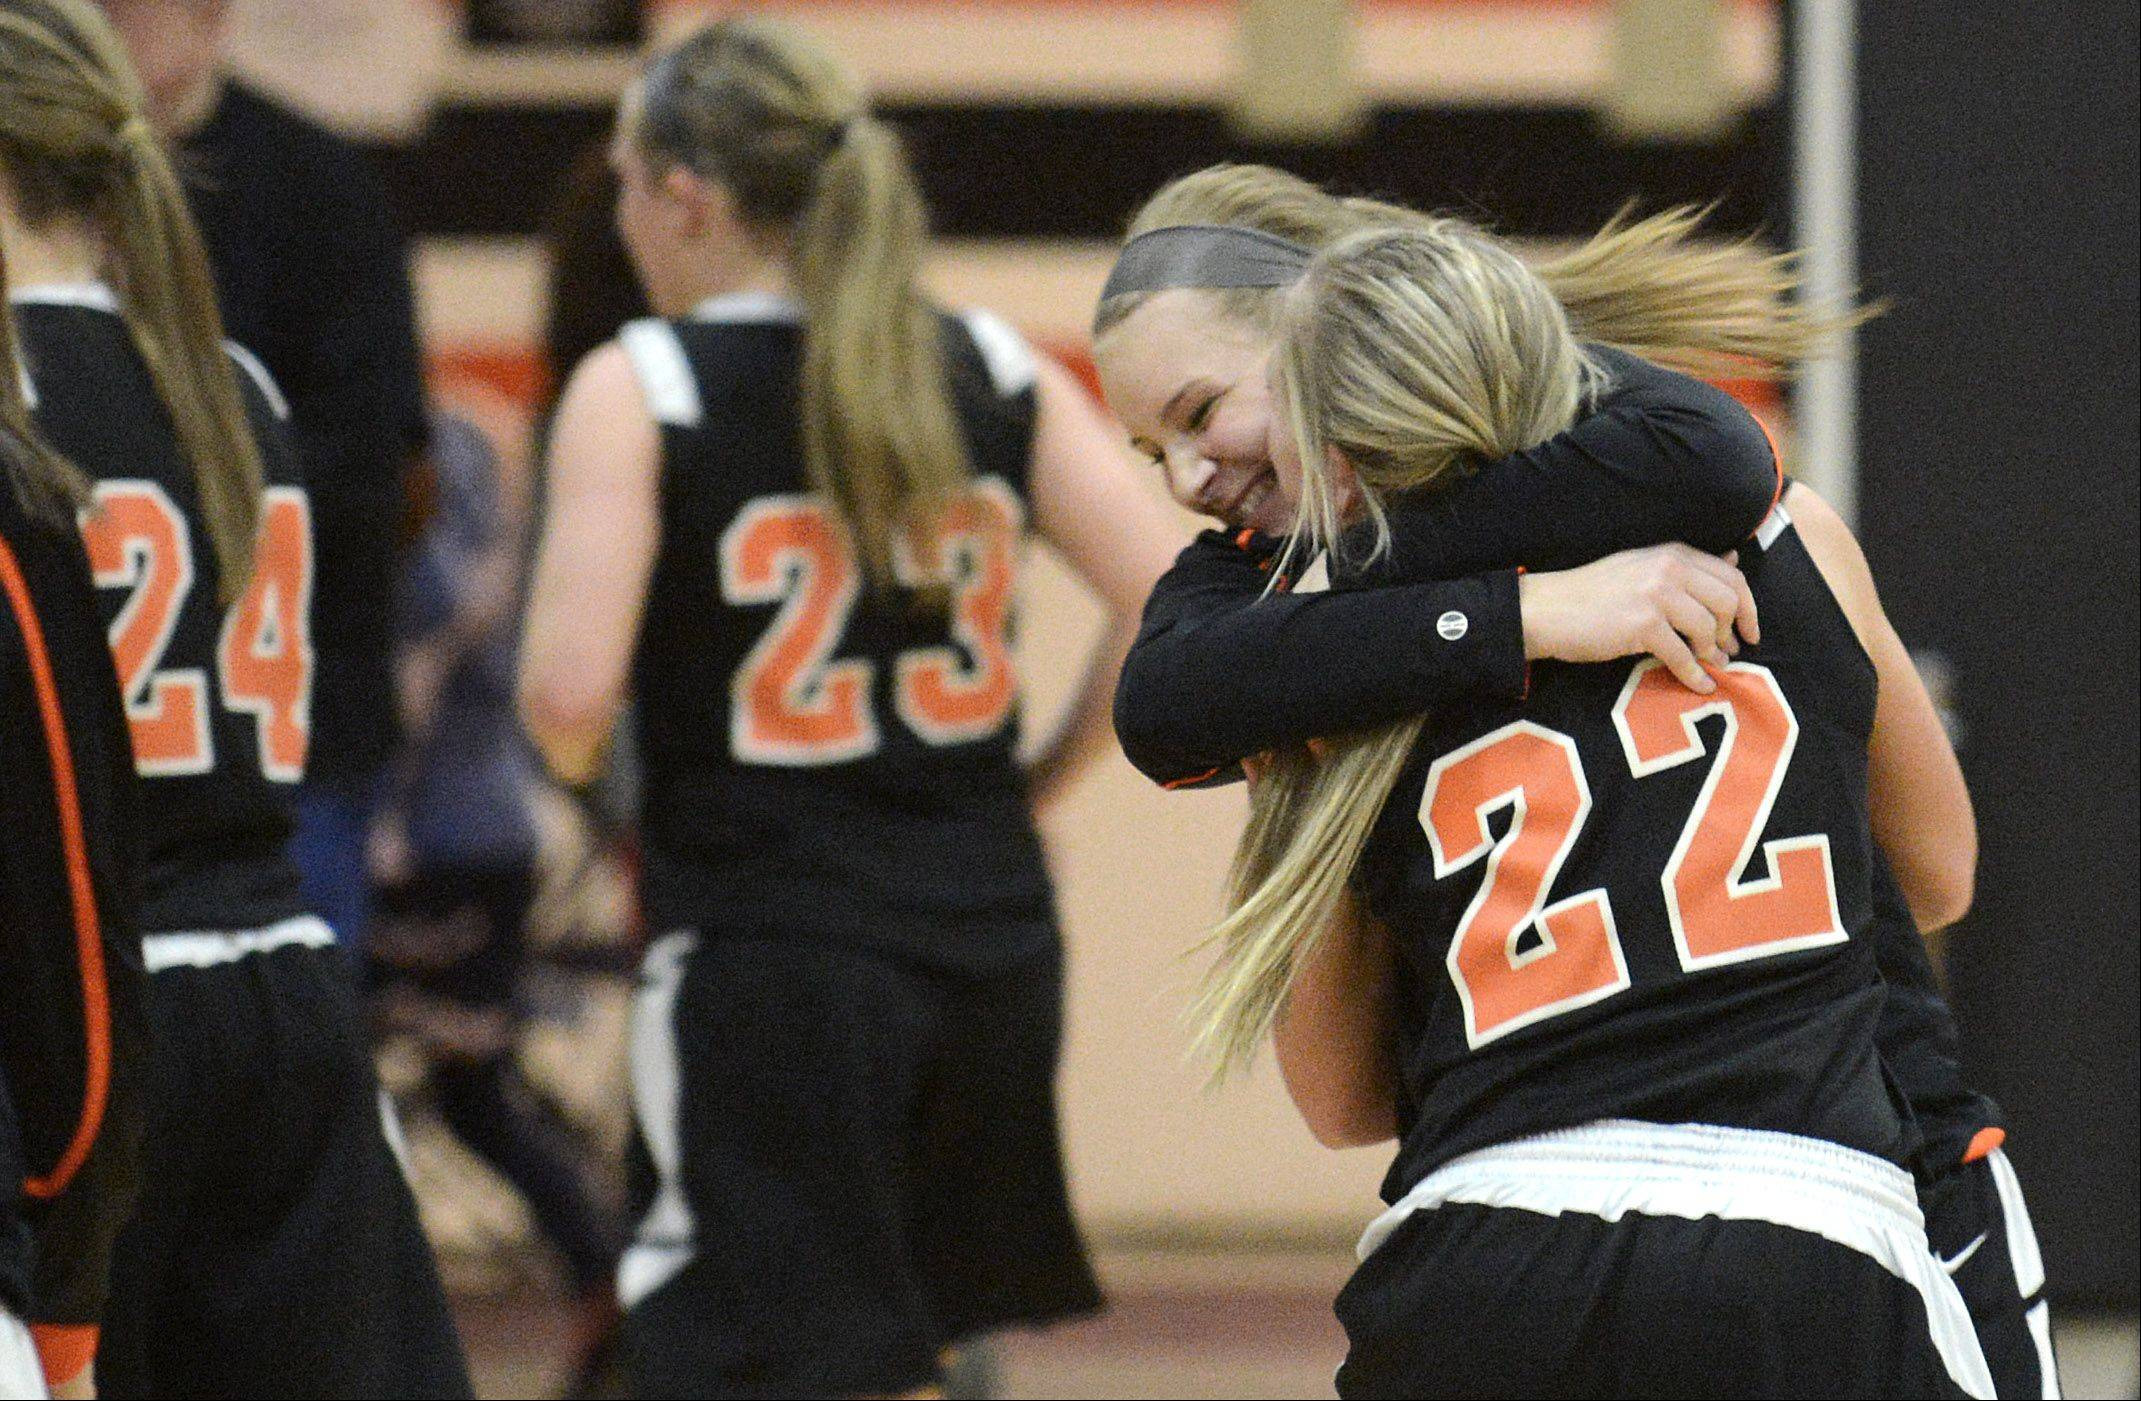 Laura Stoecker/lstoecker@dailyherald.comSt. Charles East's Marlena Detzel (facing) embraces teammate Anna Bartels after their win over Batavia in the 4A regional on Tuesday, February 12.